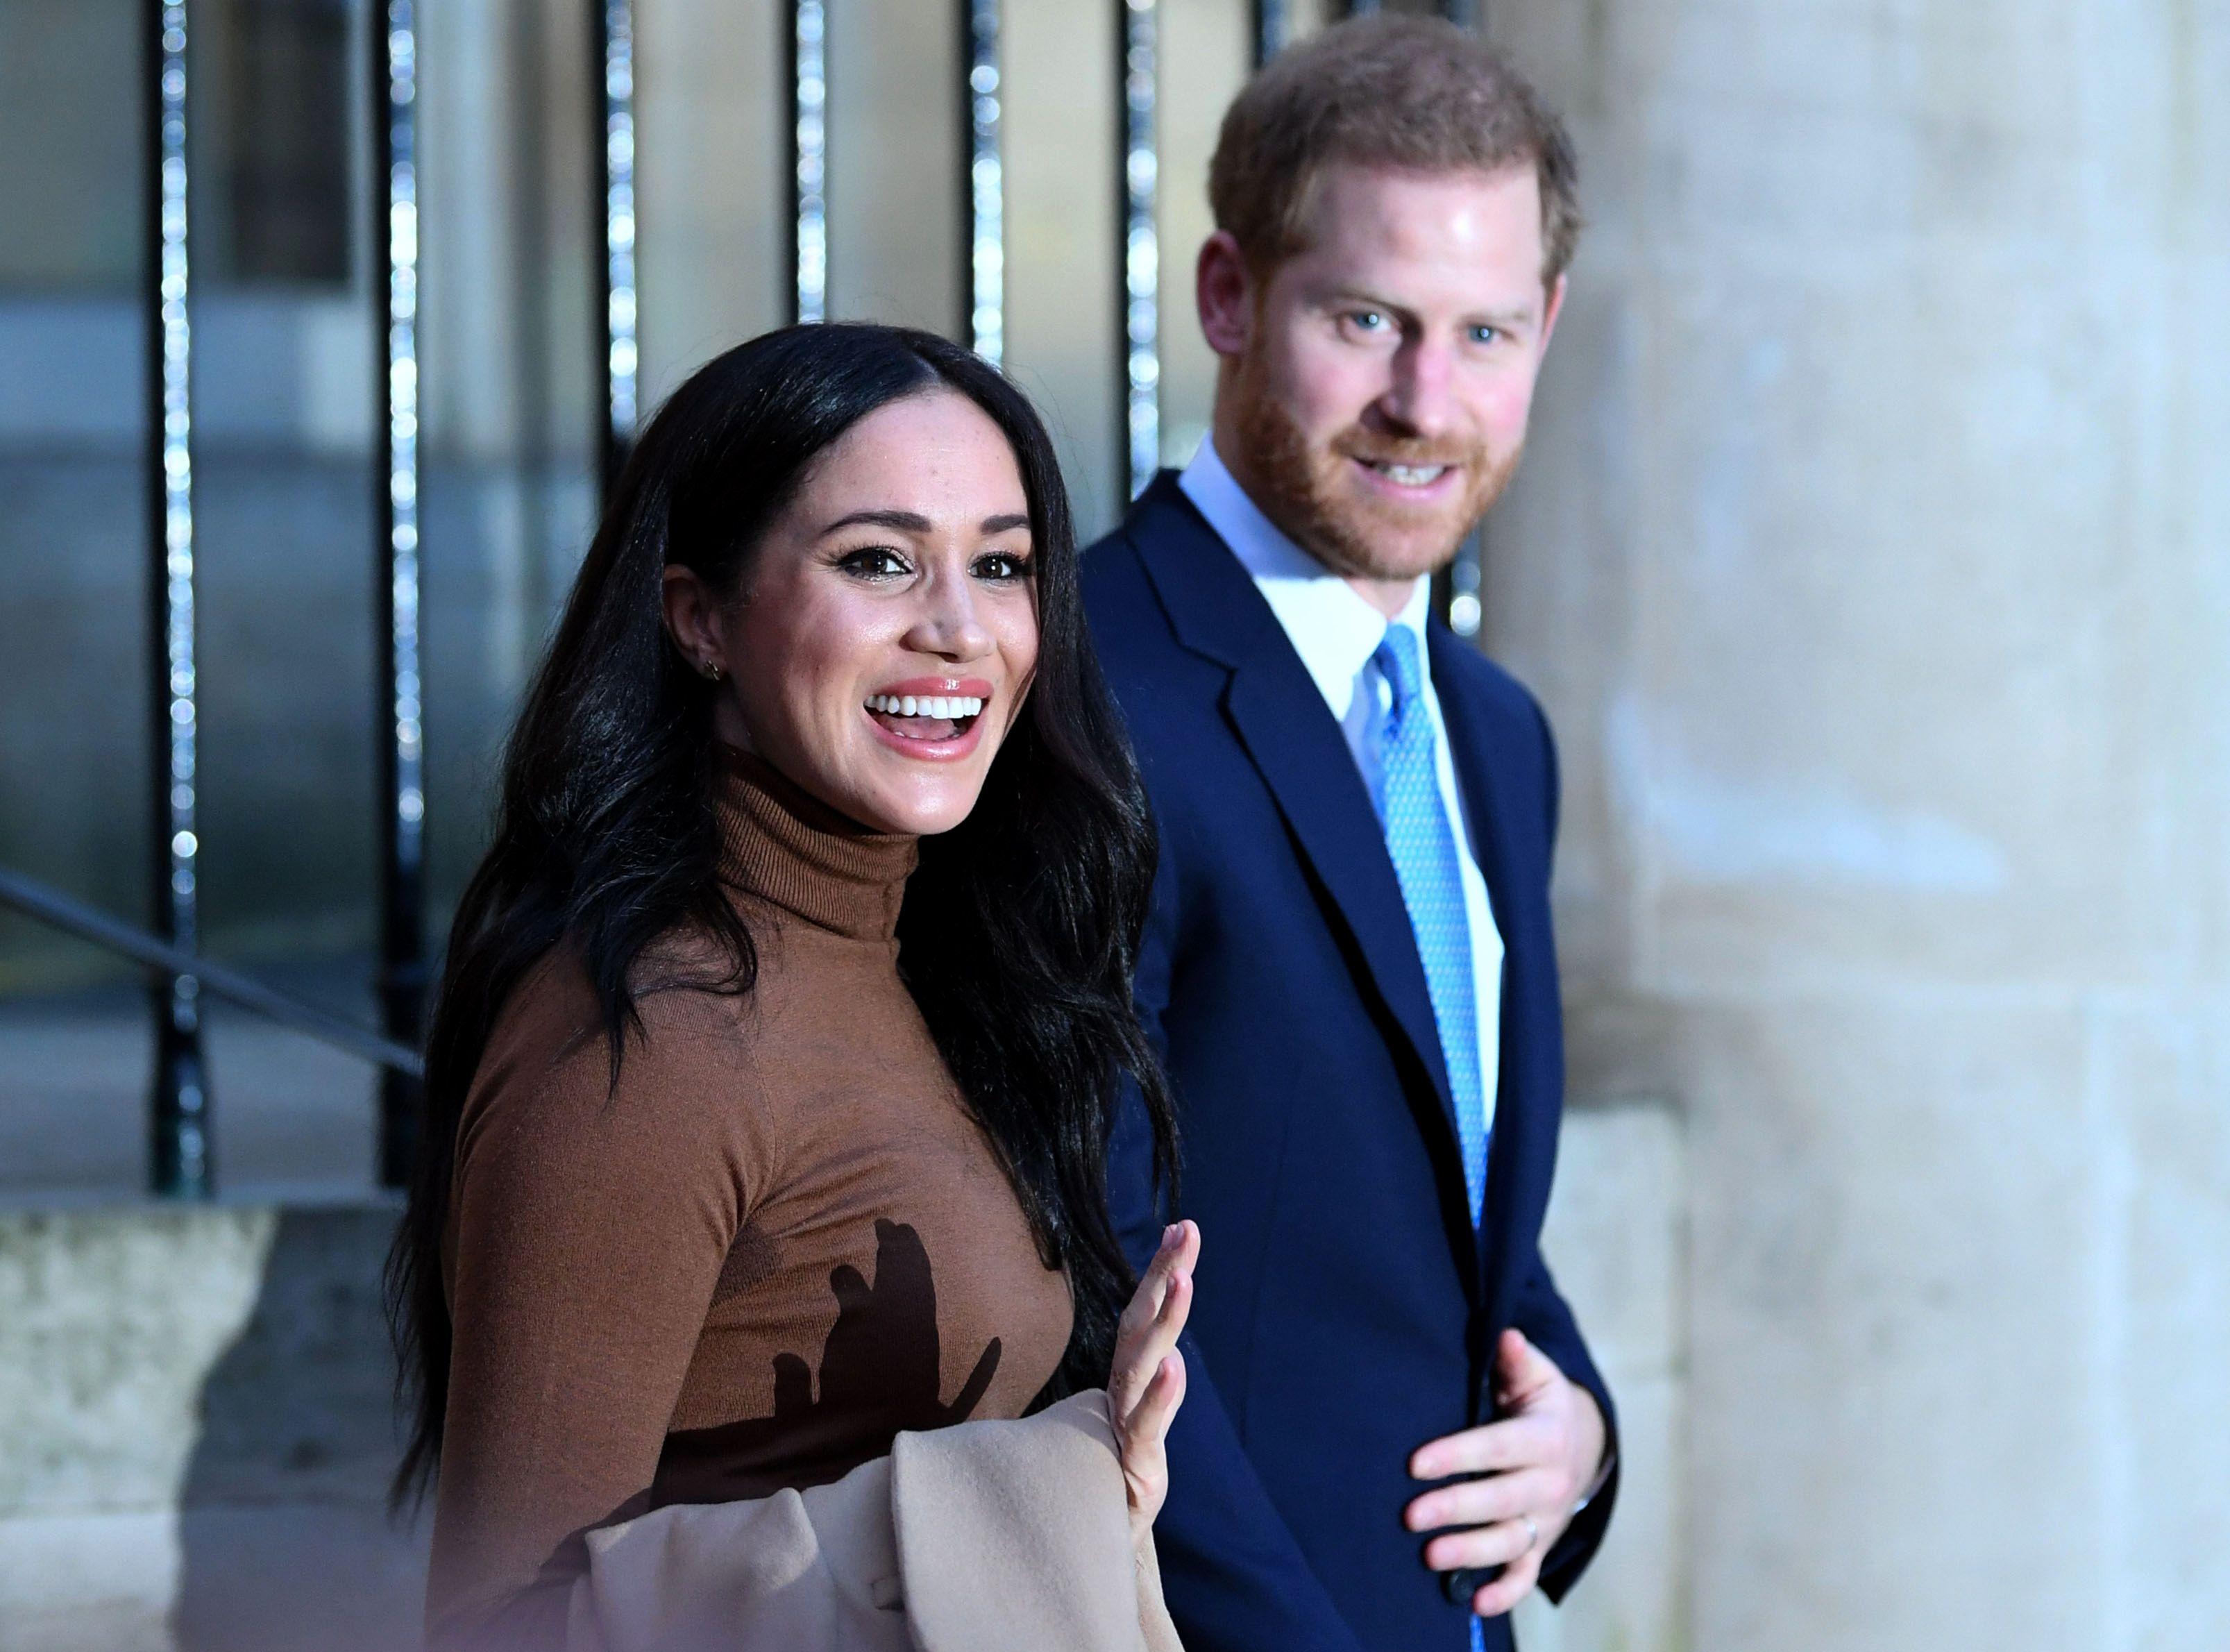 Prince Harry, Duke of Sussex and Meghan, Duchess of Sussex react after their visit to Canada House in thanks for the warm Canadian hospitality and support they received during their recent stay in Canada, on January 7, 2020 | Getty Images